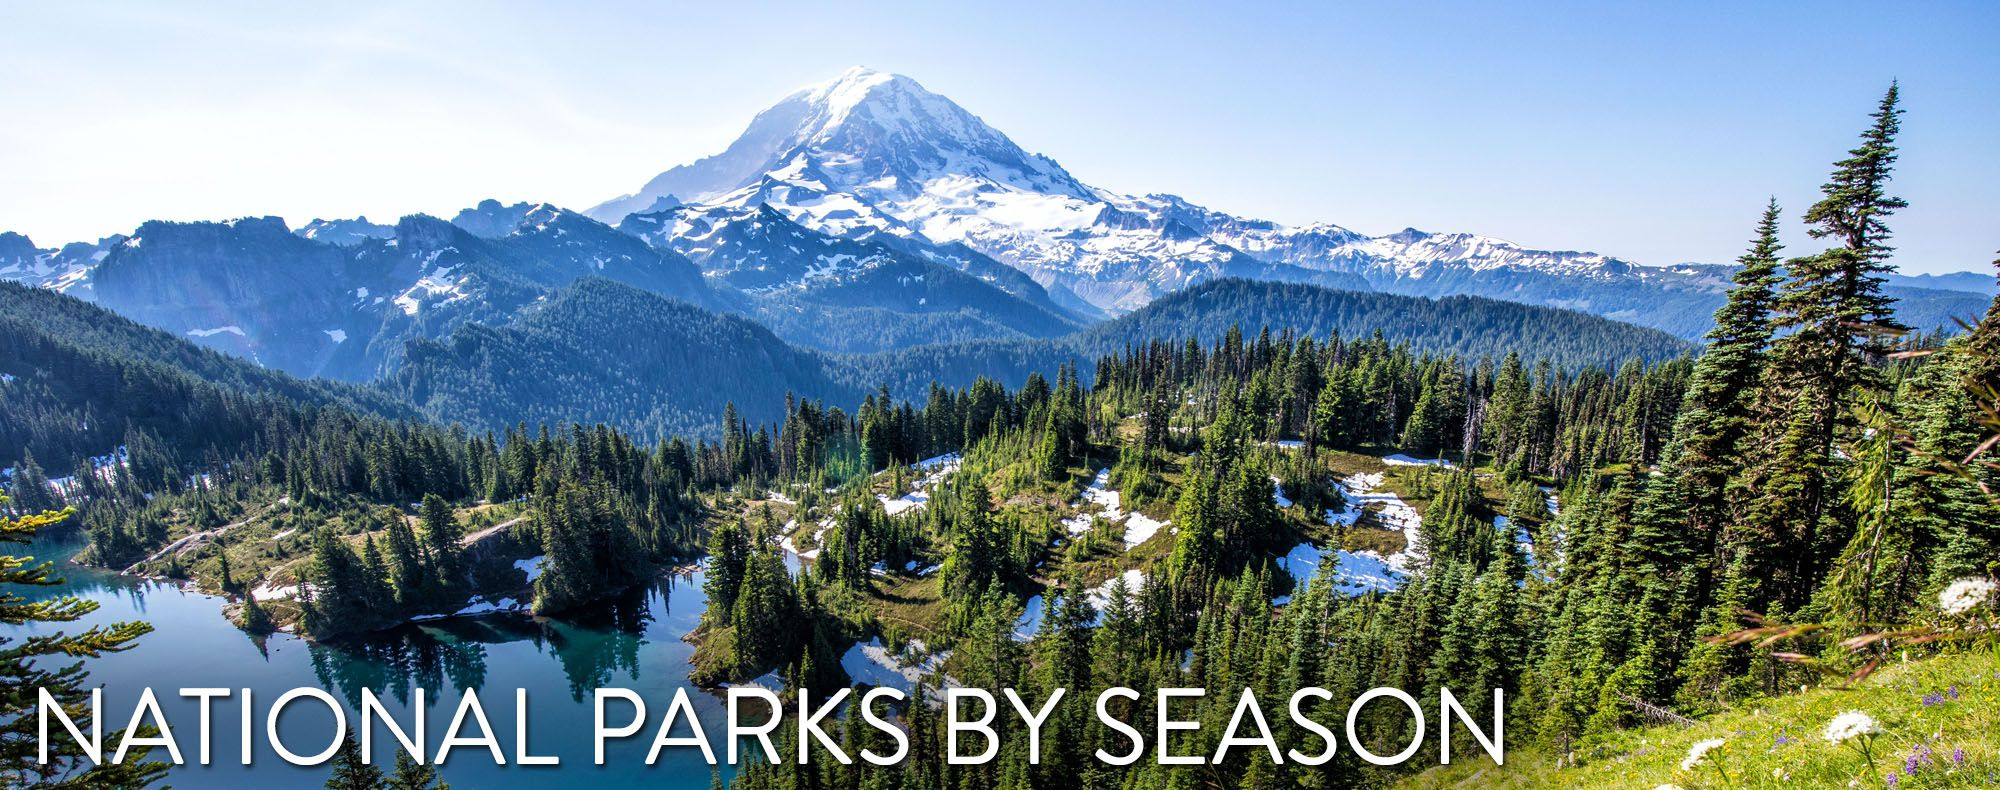 National Parks by Season